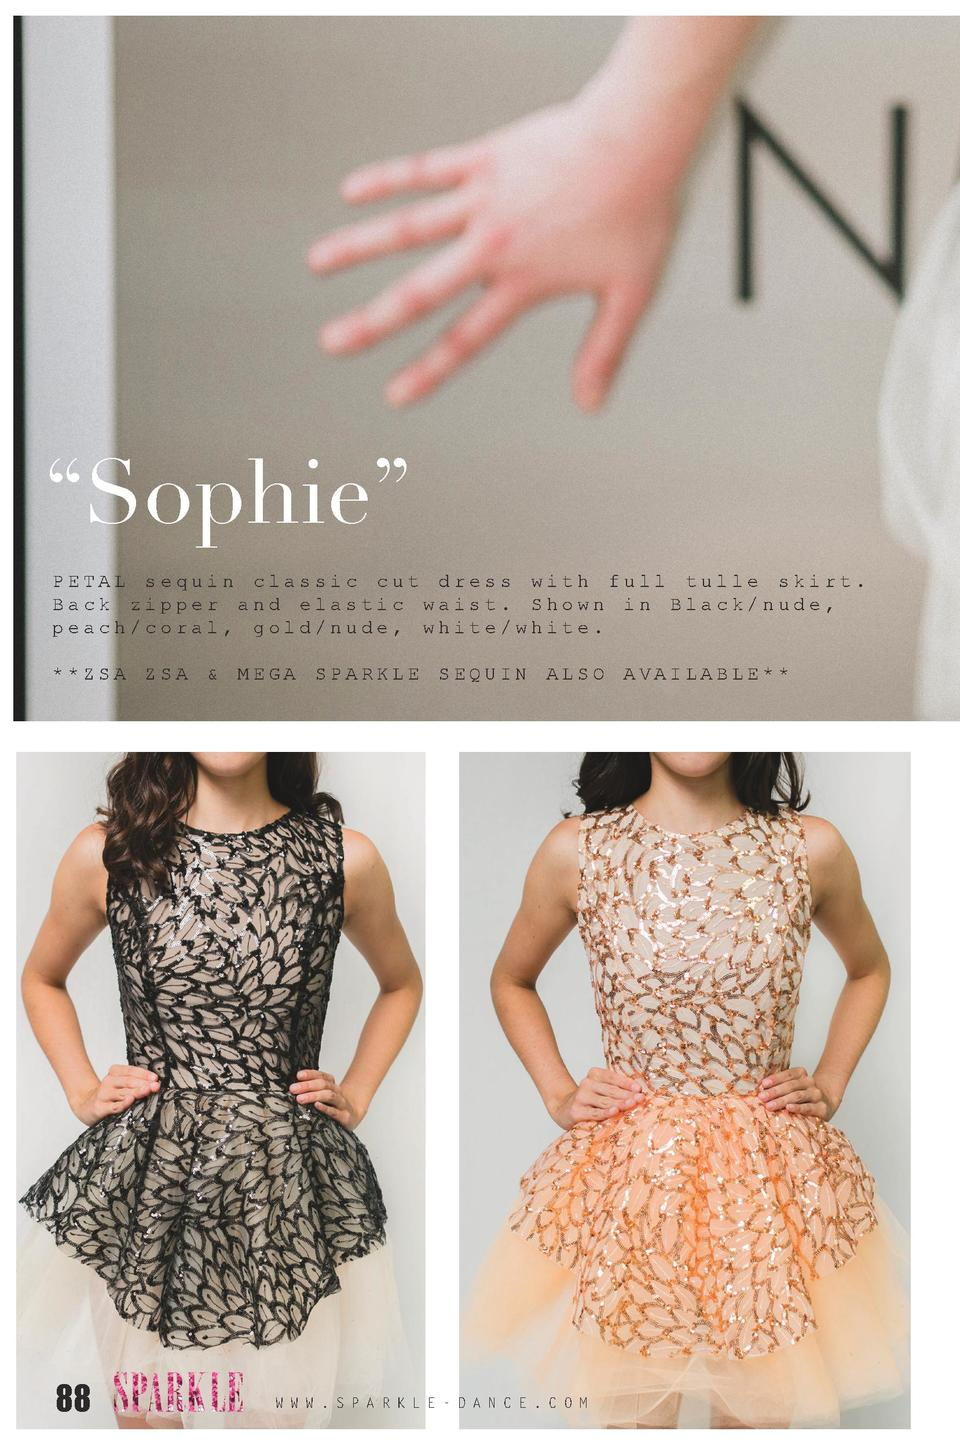 Sophie    PETAL sequin classic cut dress with full tulle skirt. Back zipper and elastic waist. Shown in Black nude, pea...